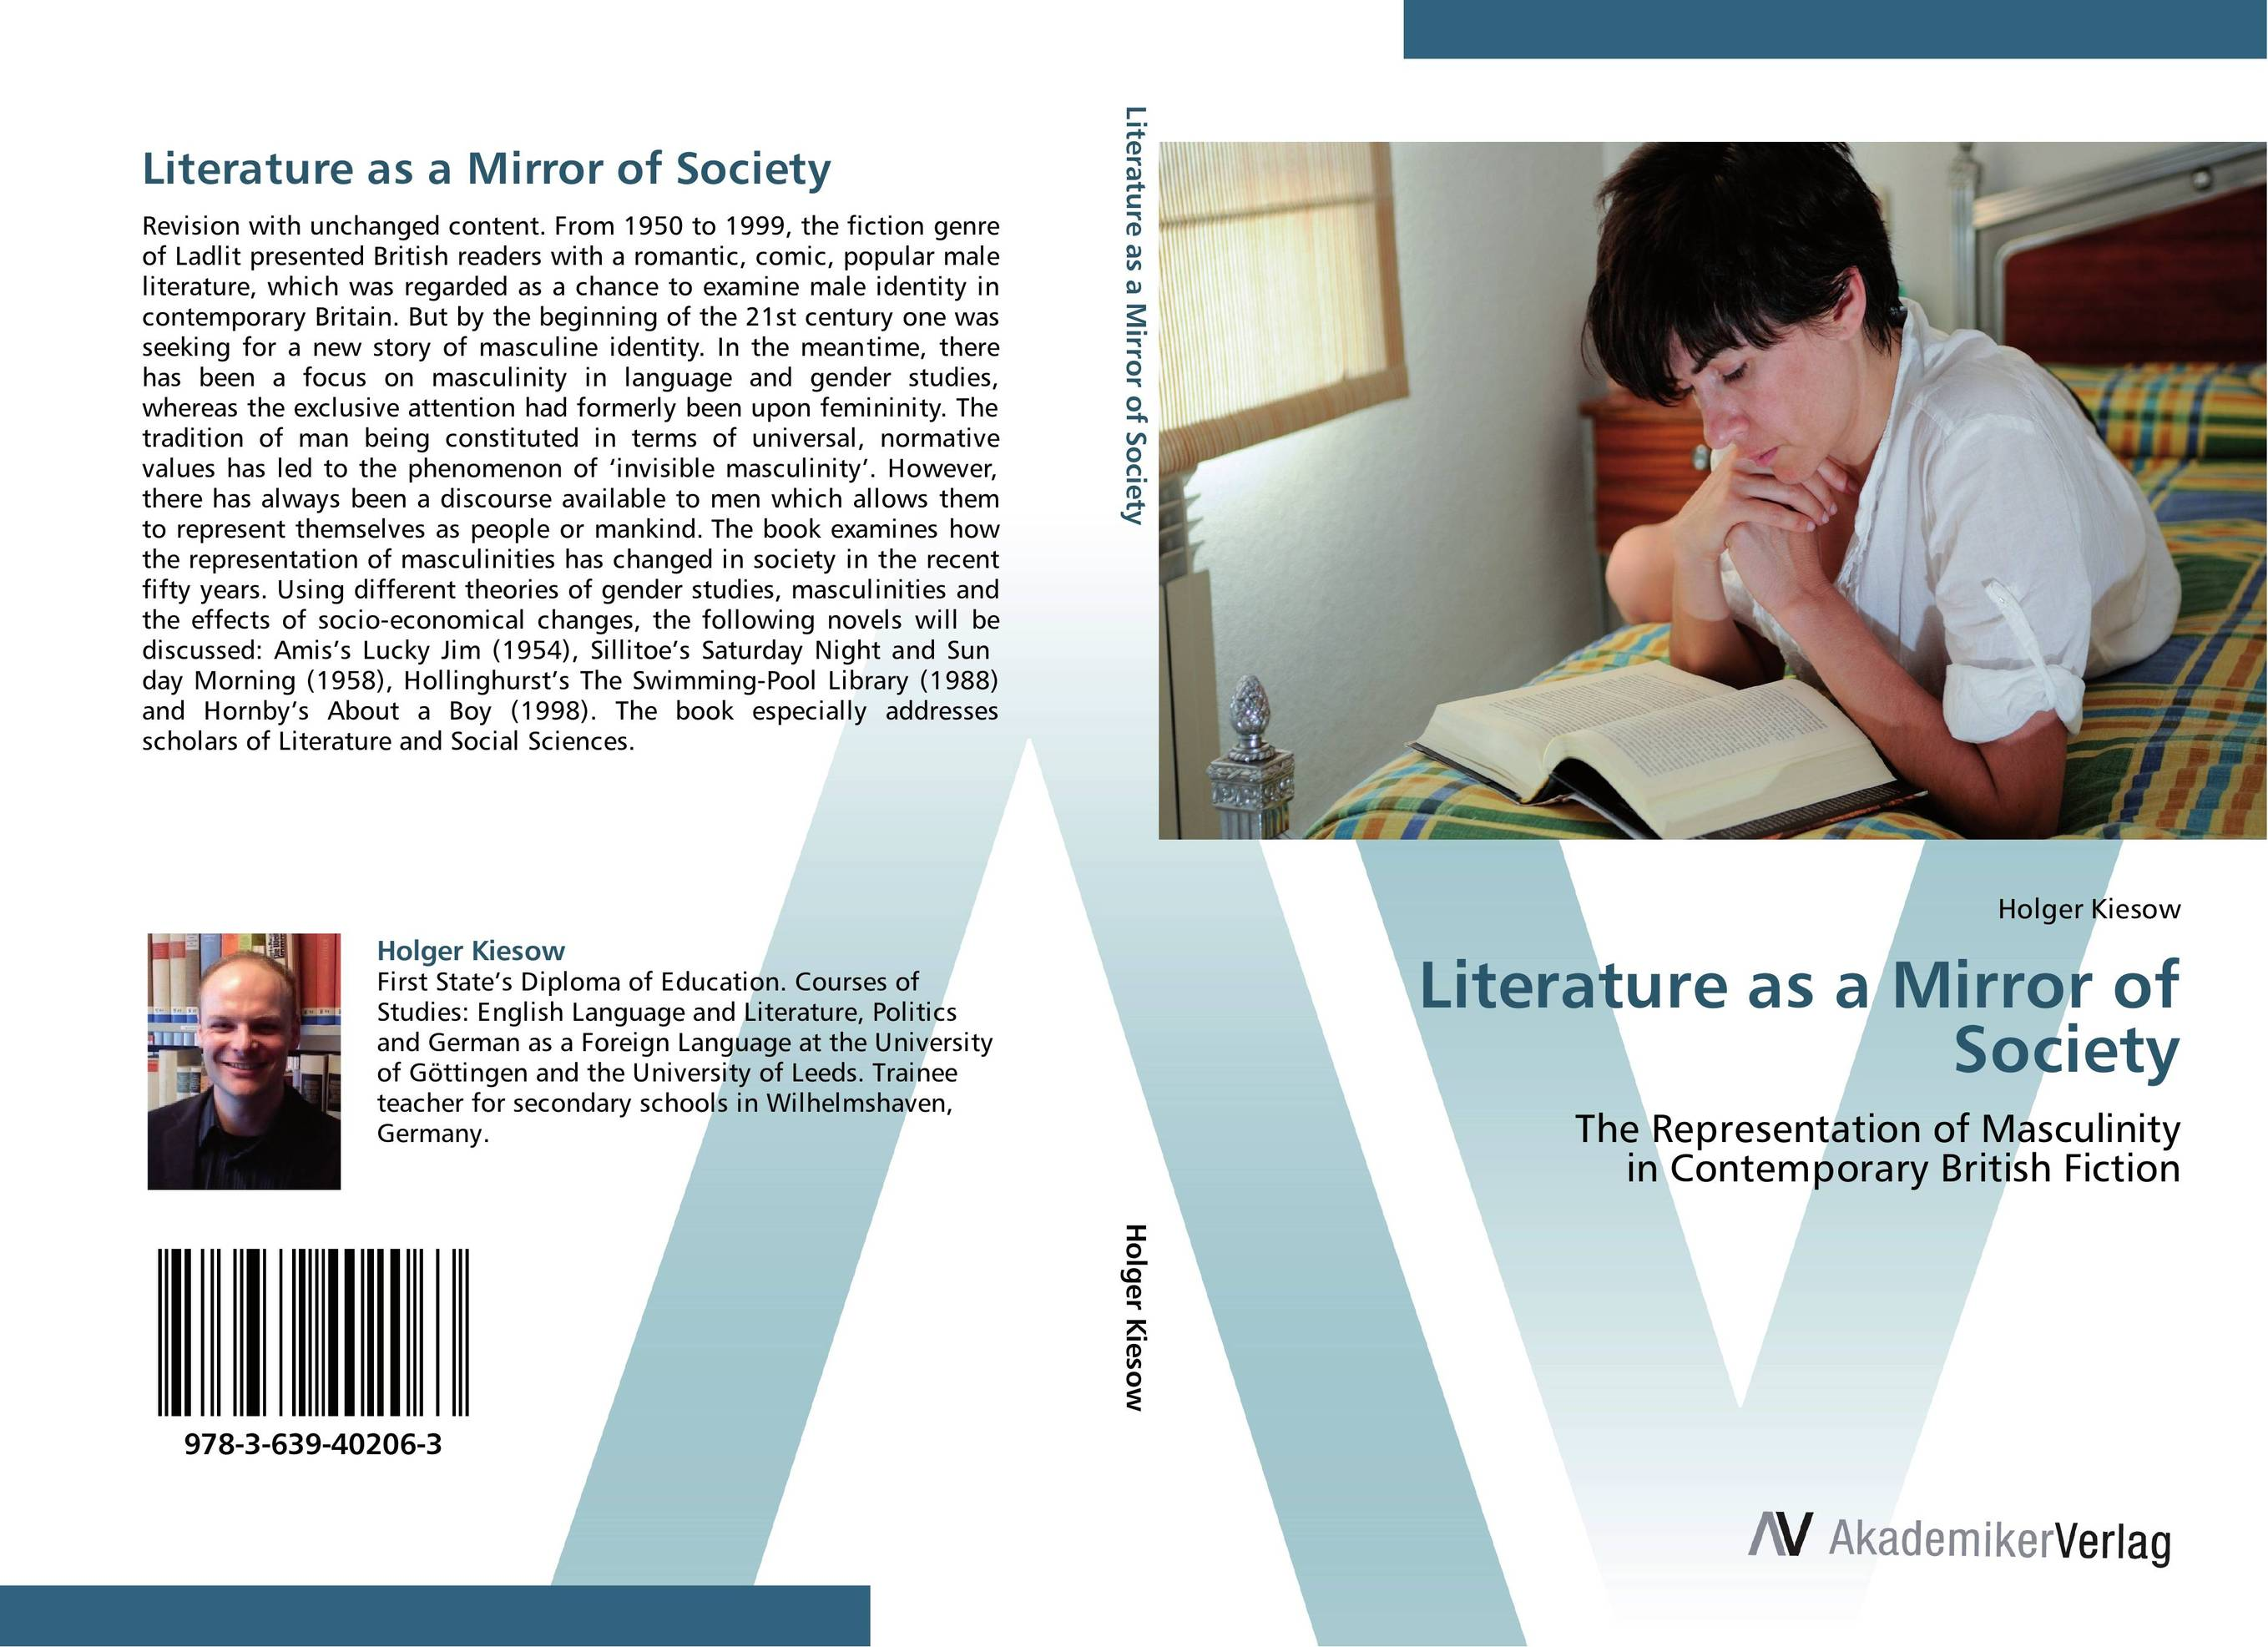 Literature as a Mirror of Society language policy and identity in a diverse society